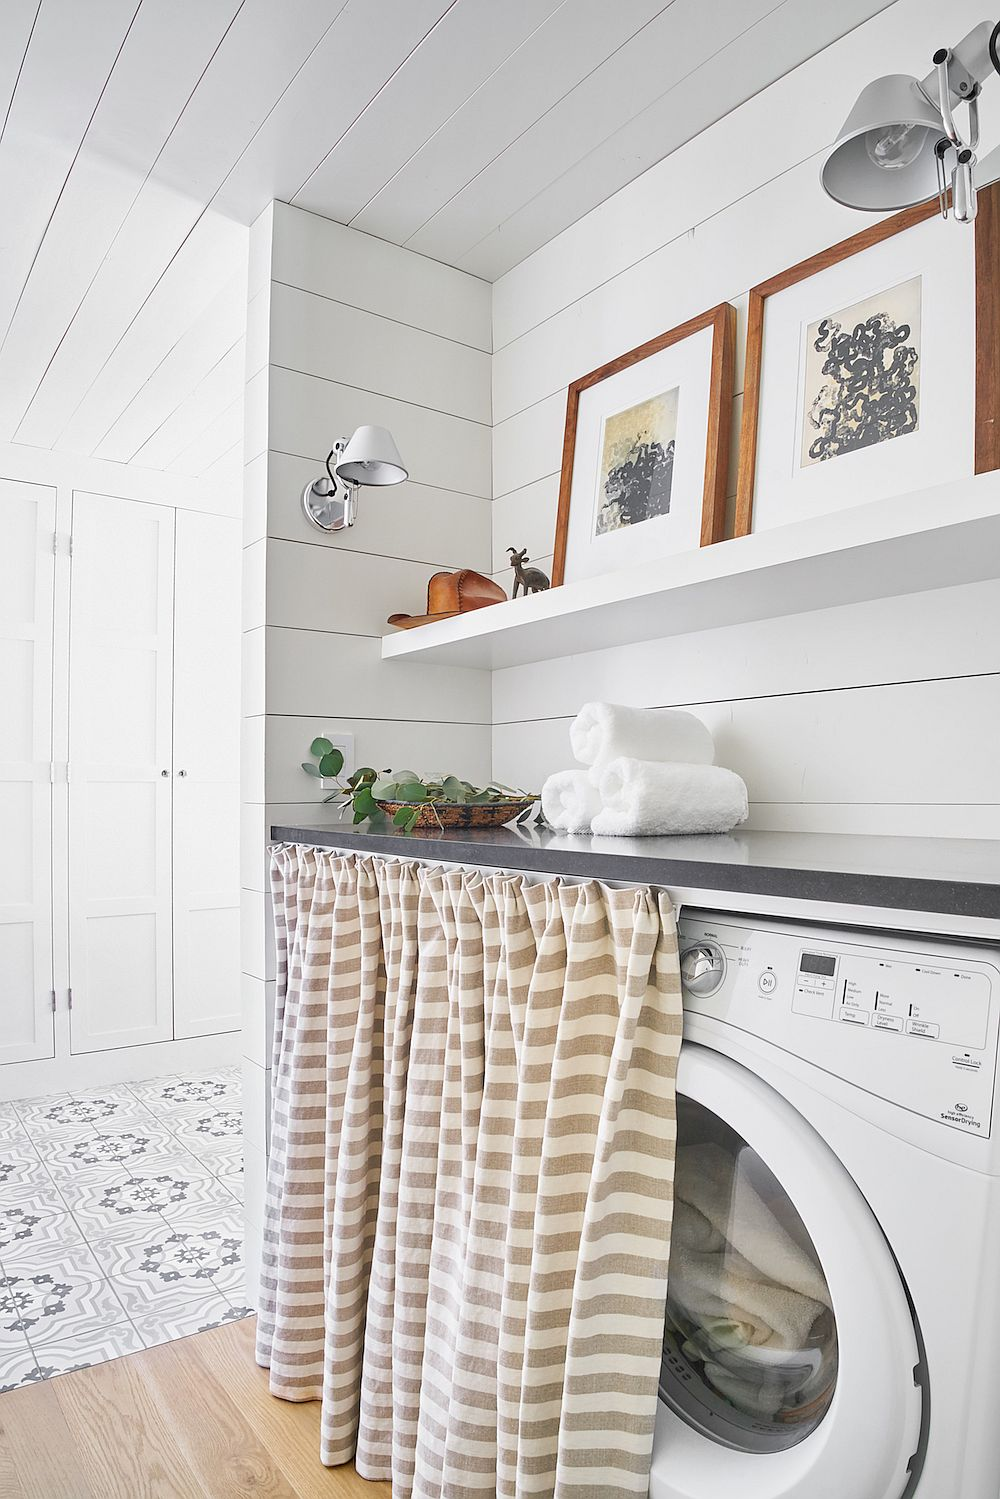 Hide-away-the-laundry-area-when-it-is-not-in-use-with-a-small-curtain-59692